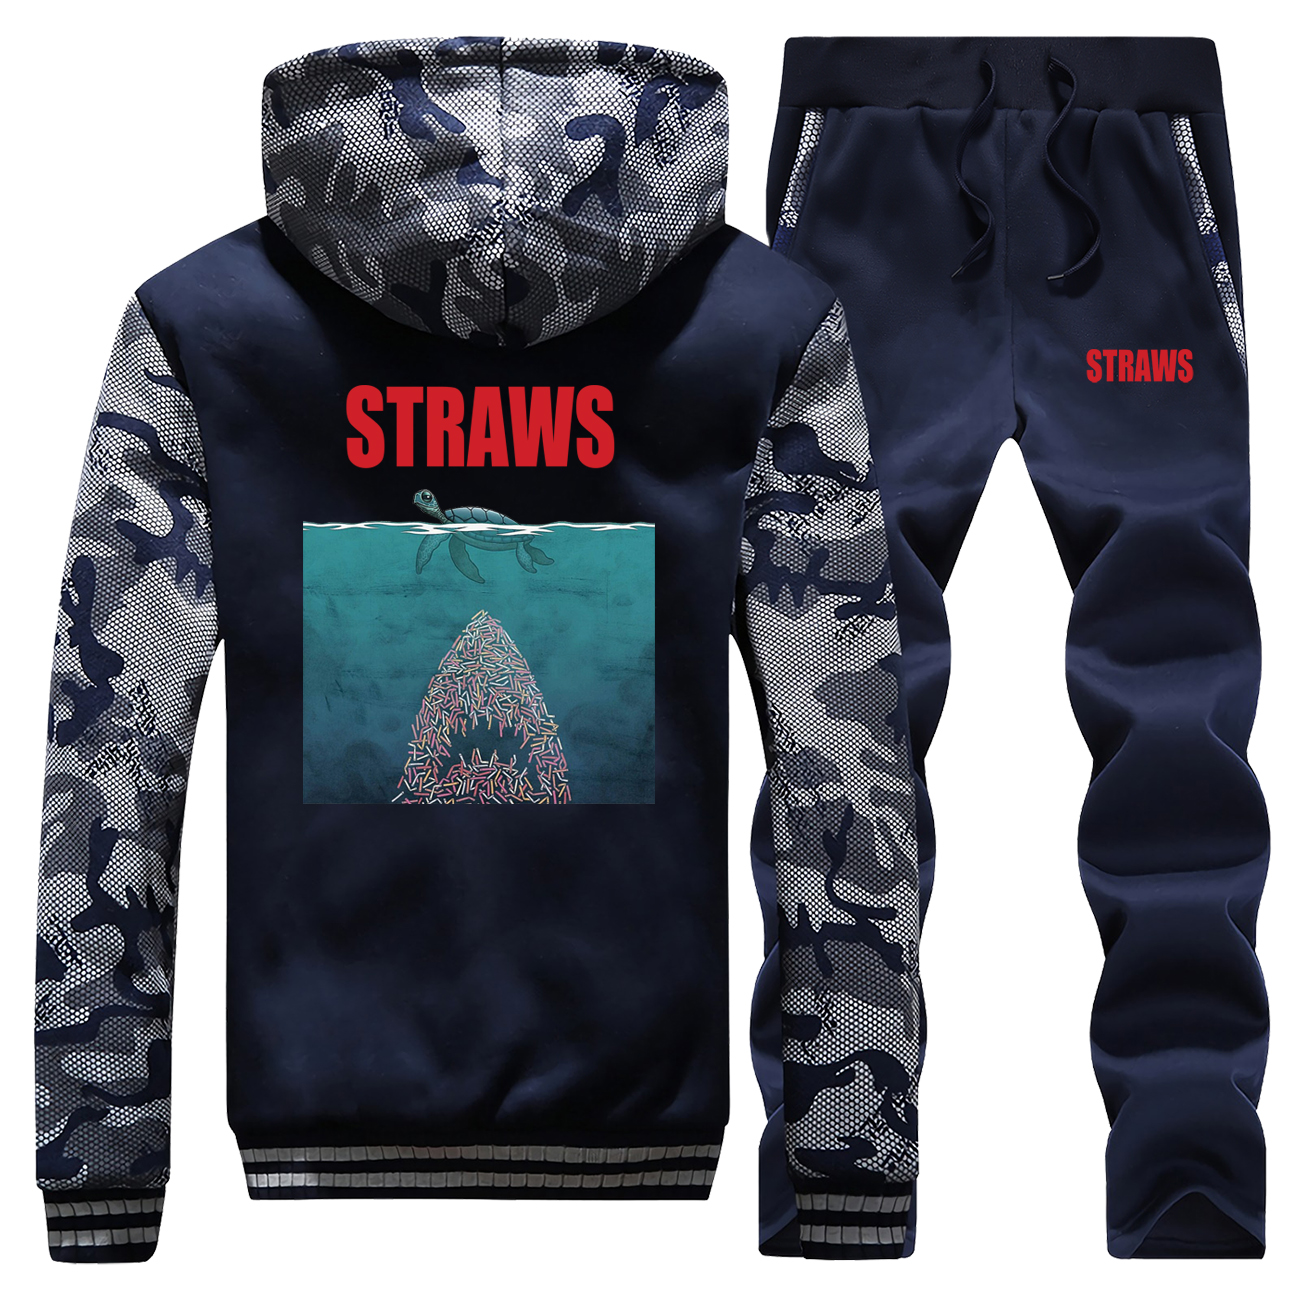 Straws Shark Funny Desgin Camo Men's Sets Fashion Thick Jackets Sweatpants Fleece Fitness Pants Sweatshirt Winter Warm Gym Suit